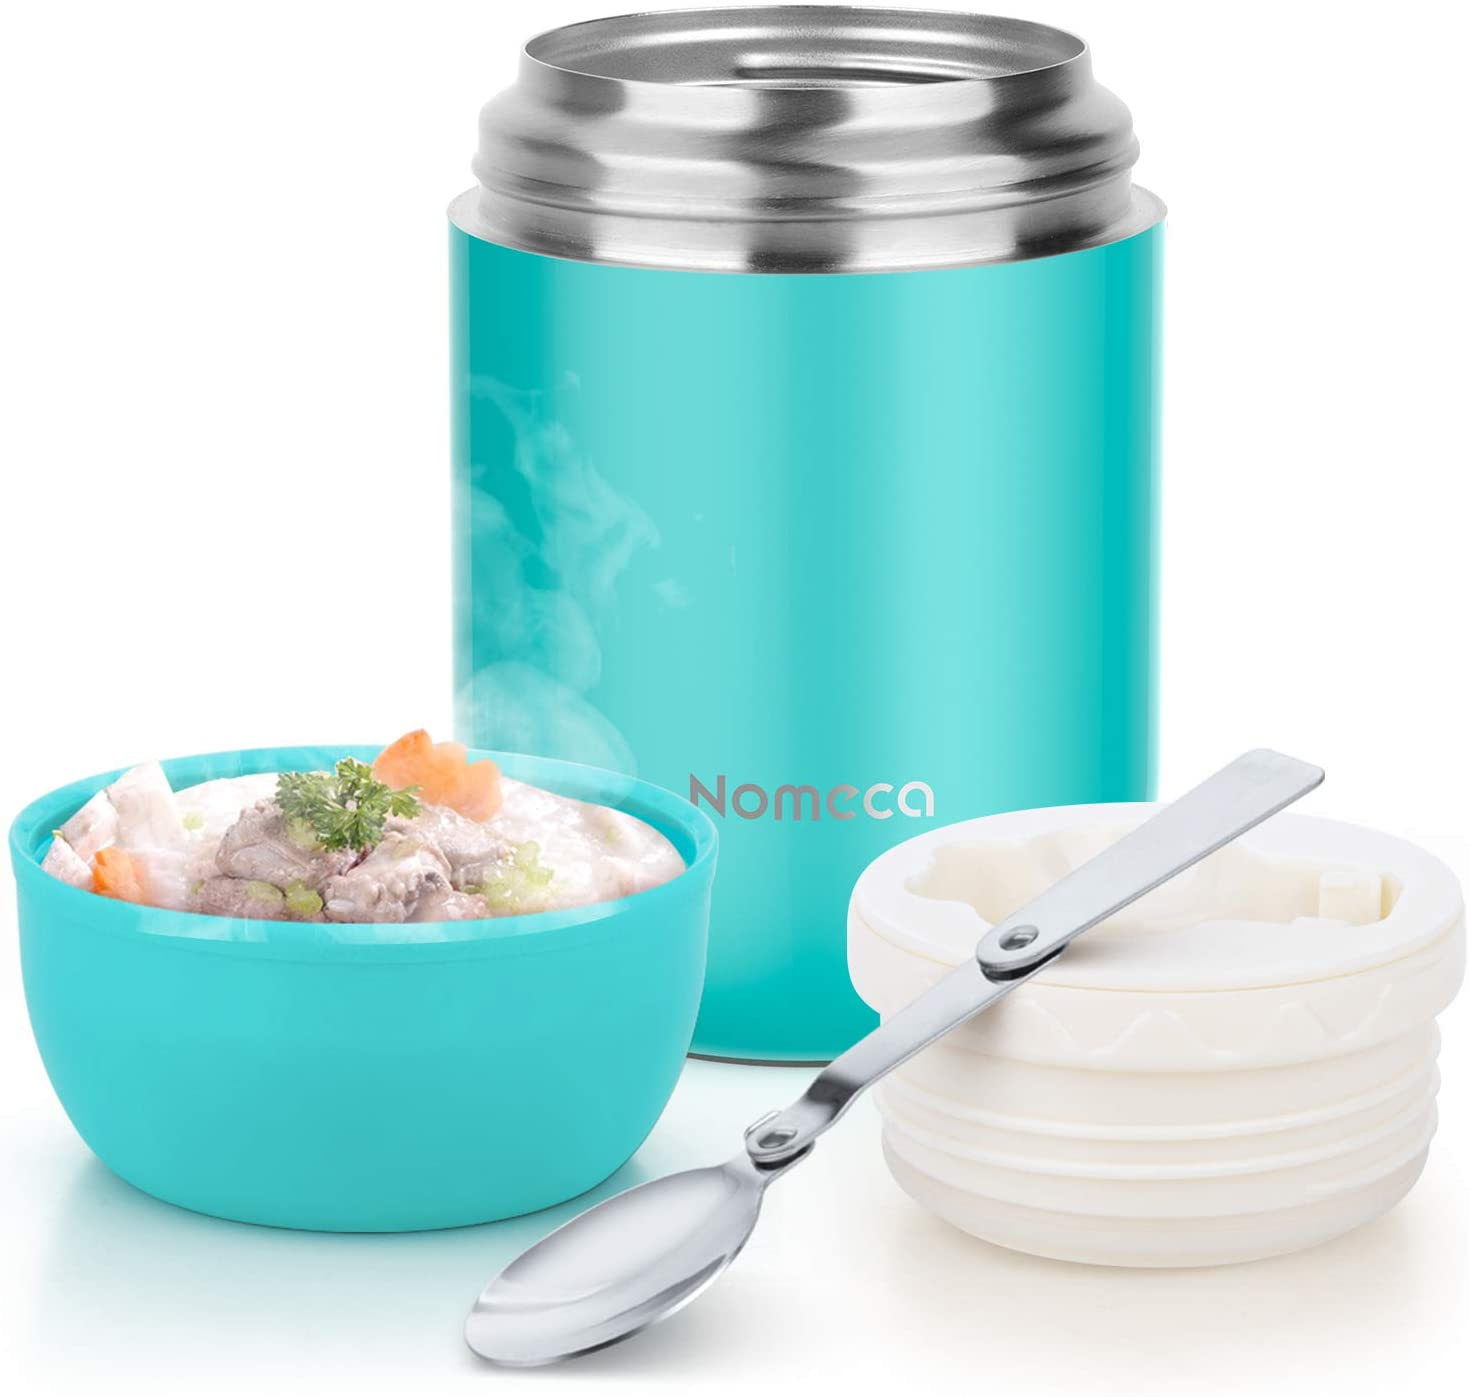 Insulated Food Jar Kids Thermoses - Wide Mouth thermal Soup Bowl With Spoon Nomeca 16Oz Stainless Steel Vacuum Food Flask Keep Food Liquid Hot Cold Thermoses for Kids Adult School Office Outdoor, Teal